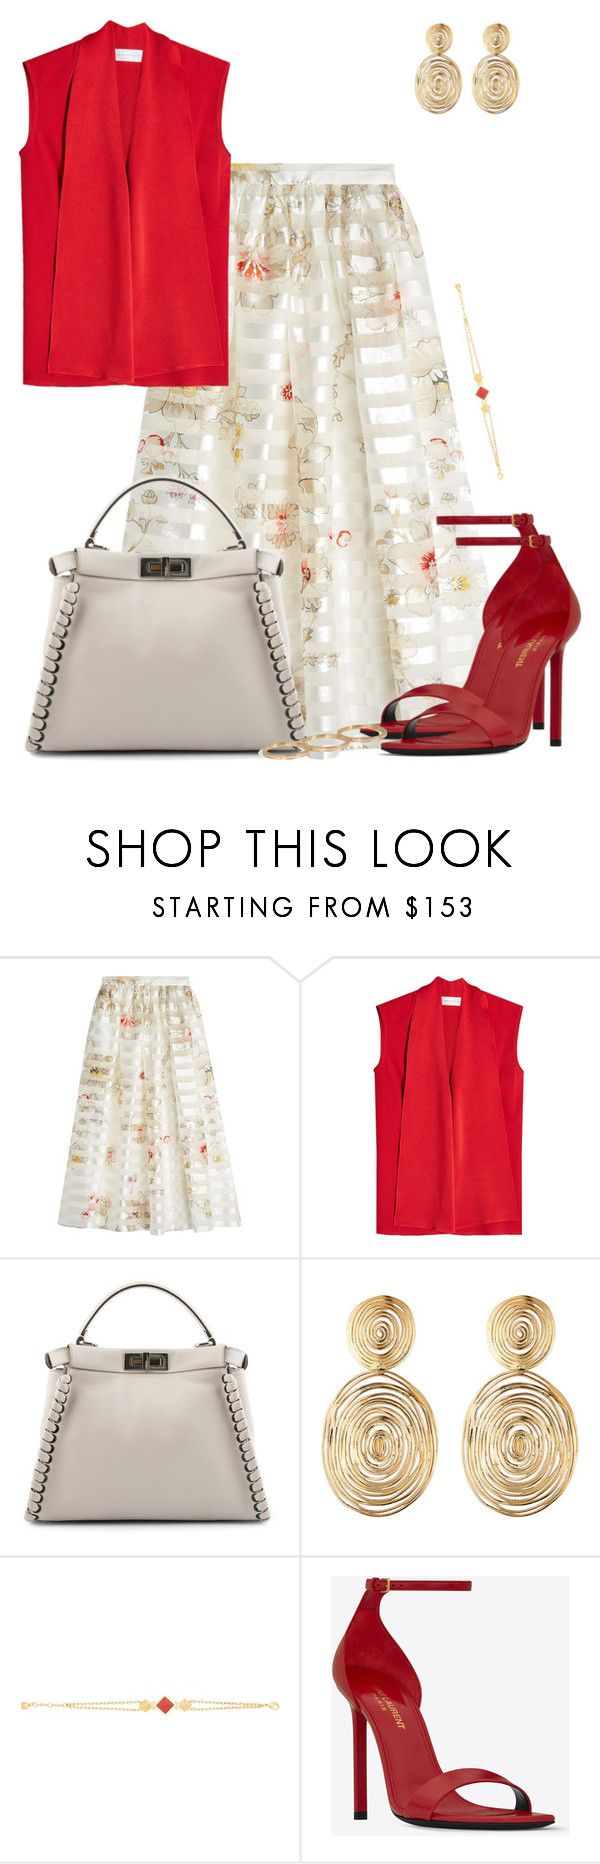 """""""SILK"""" by dazzlious ❤ liked on Polyvore featuring Fendi, Victoria Beckham, Gas Bijoux, Yves Saint Laurent and Sophie Bille Brahe"""